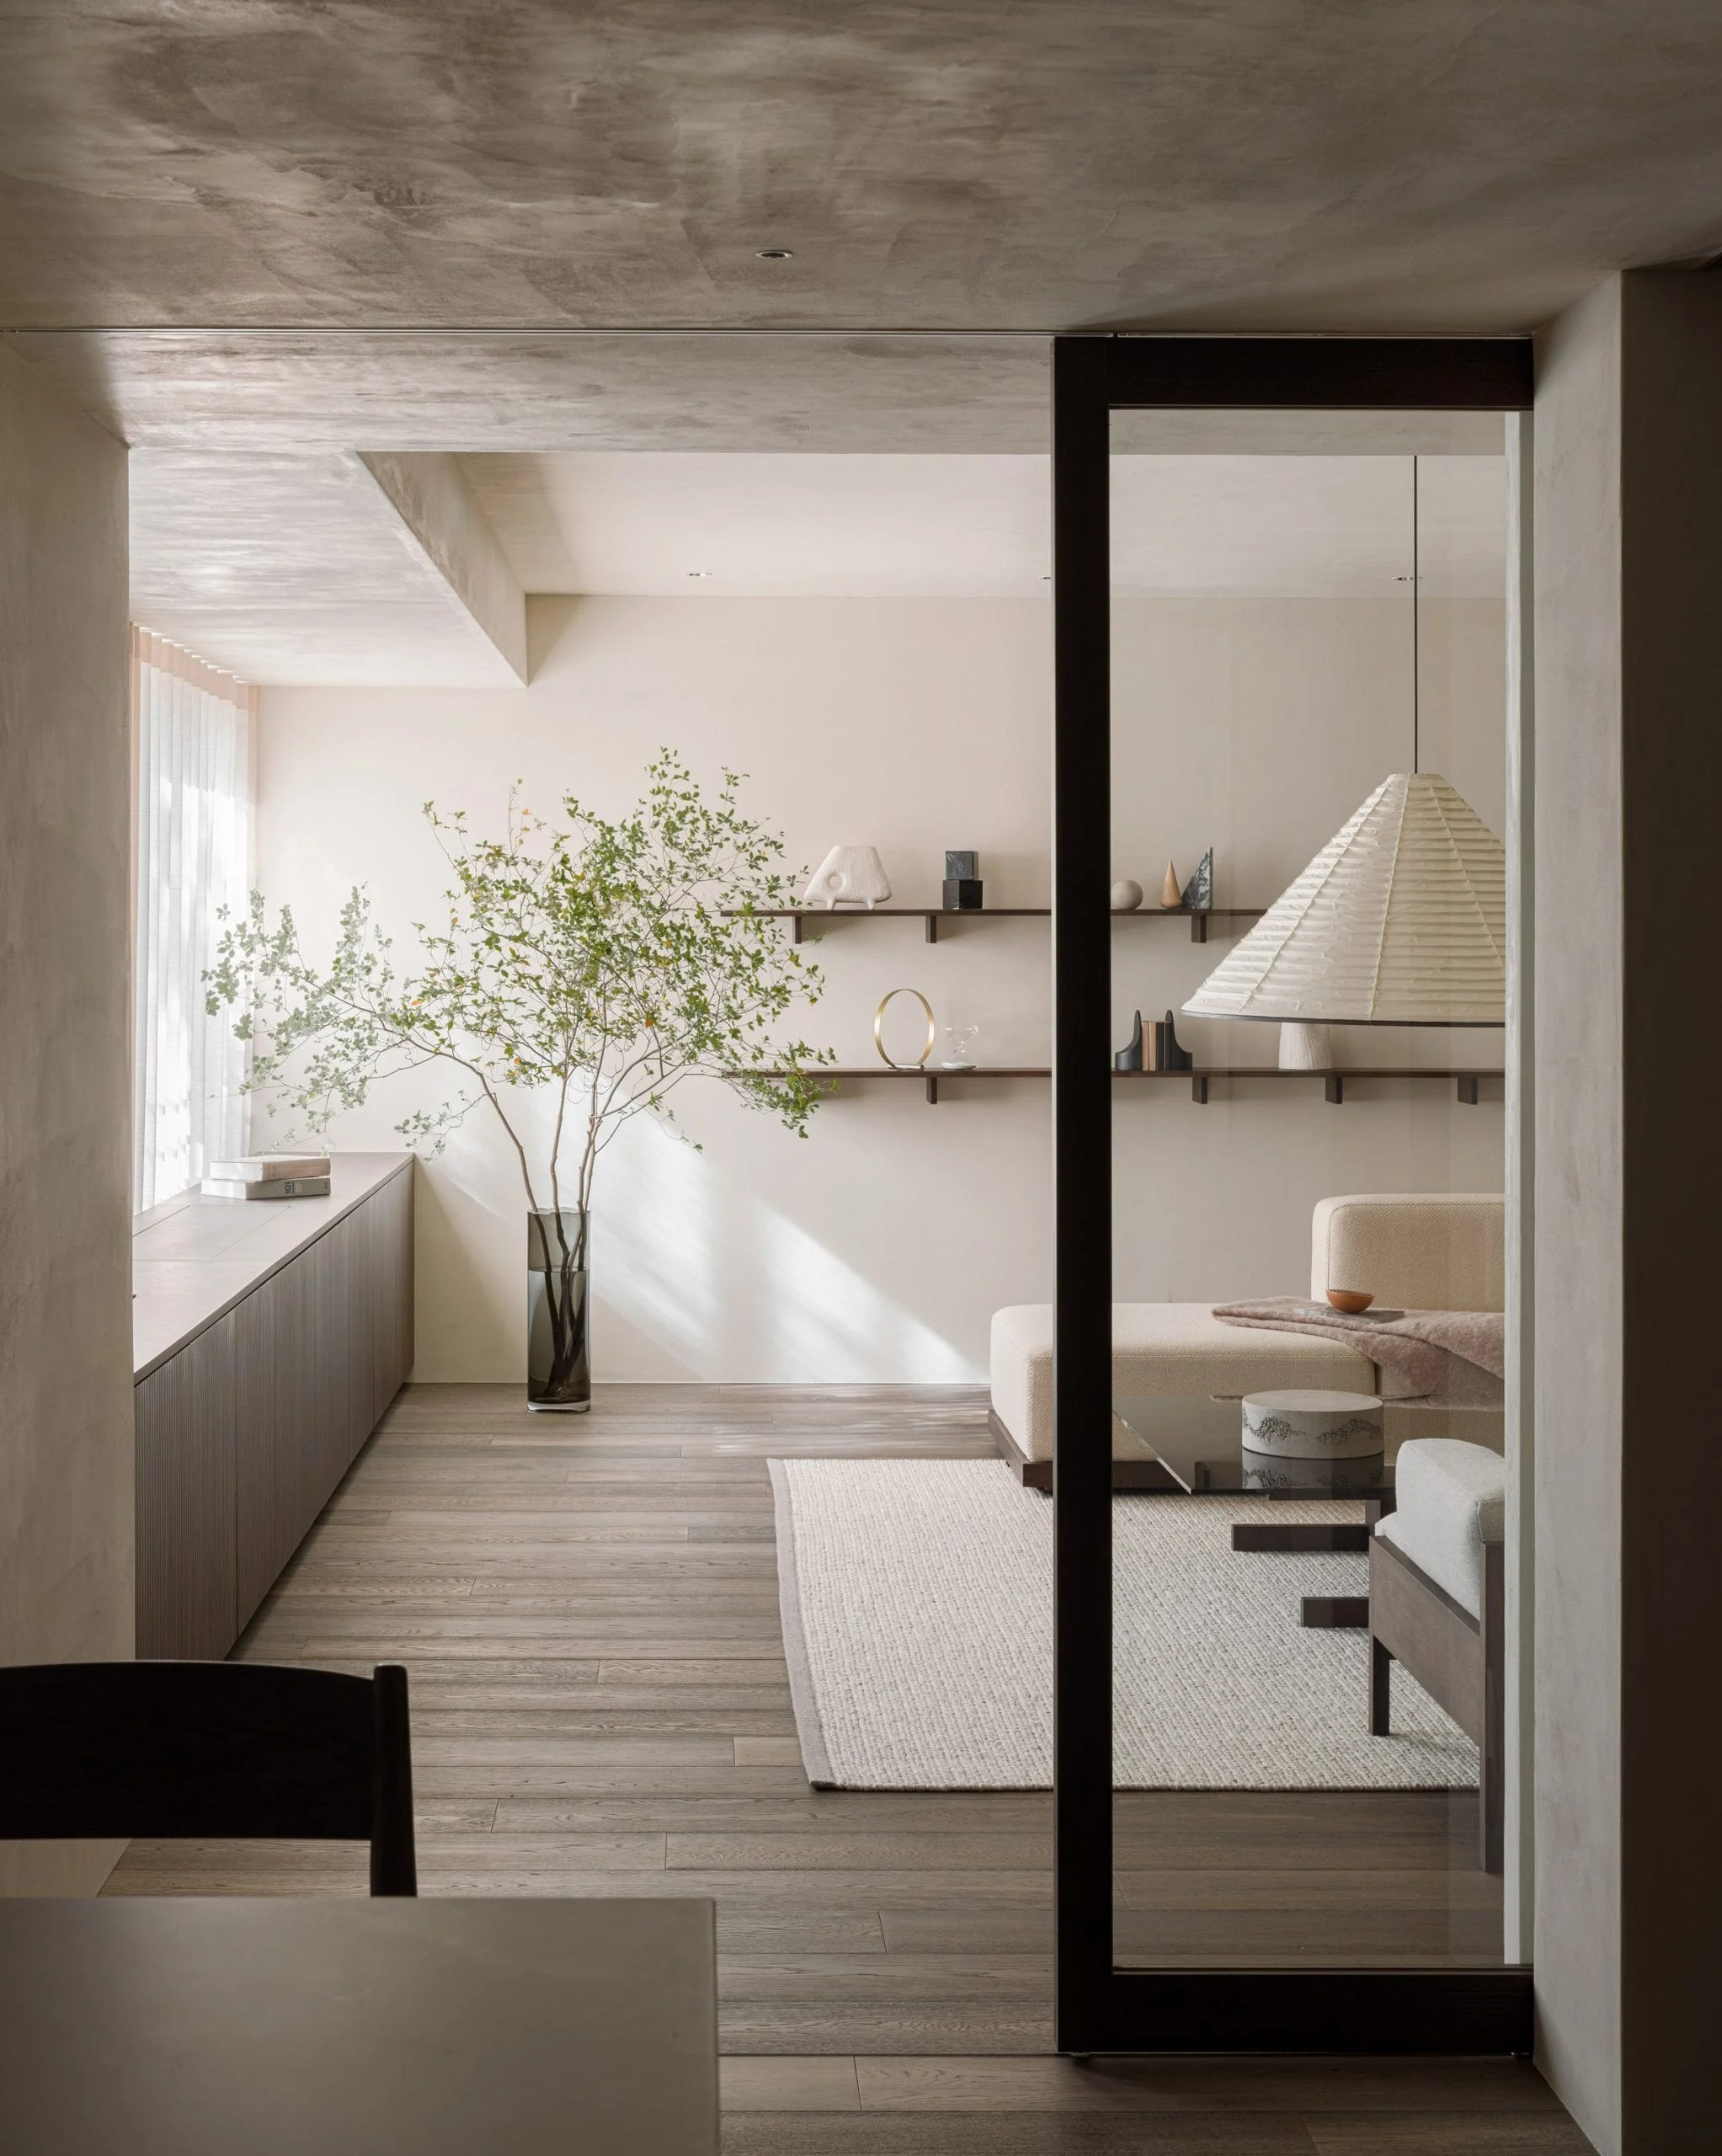 Wooden floor and white rug in Tokyo apartment